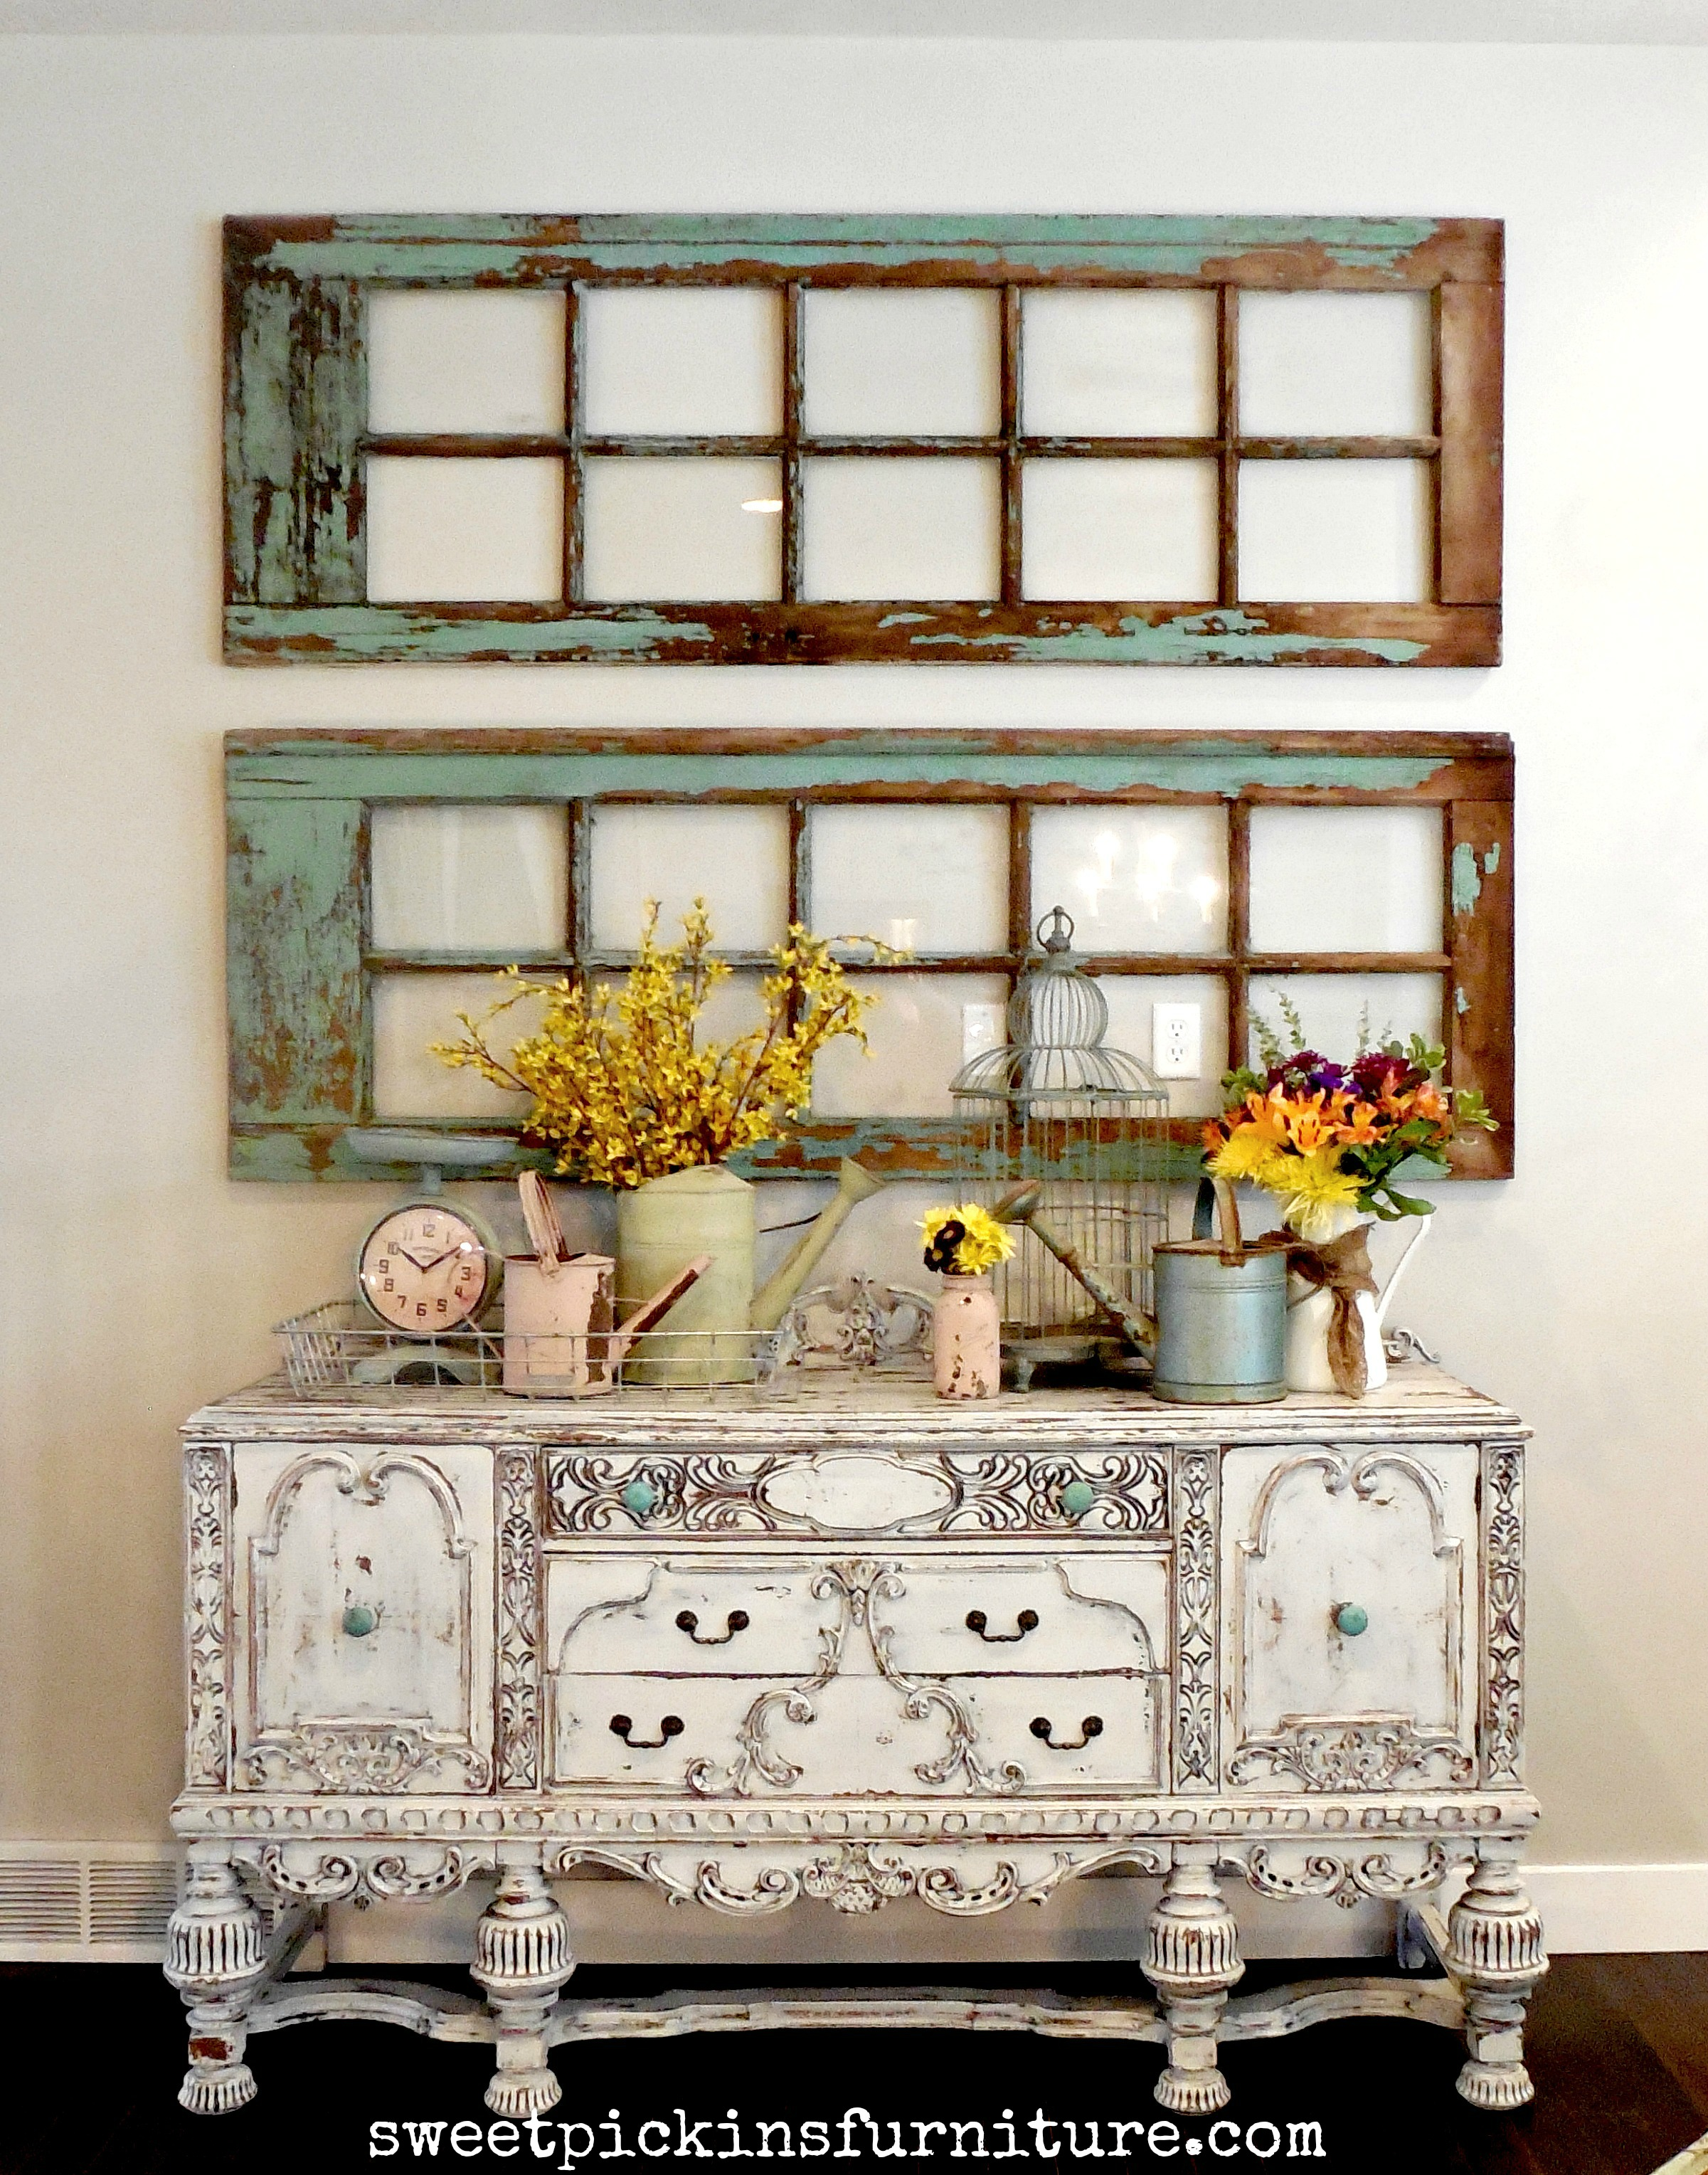 Refinished antique buffet updated family room pics for Painted tables decorating ideas